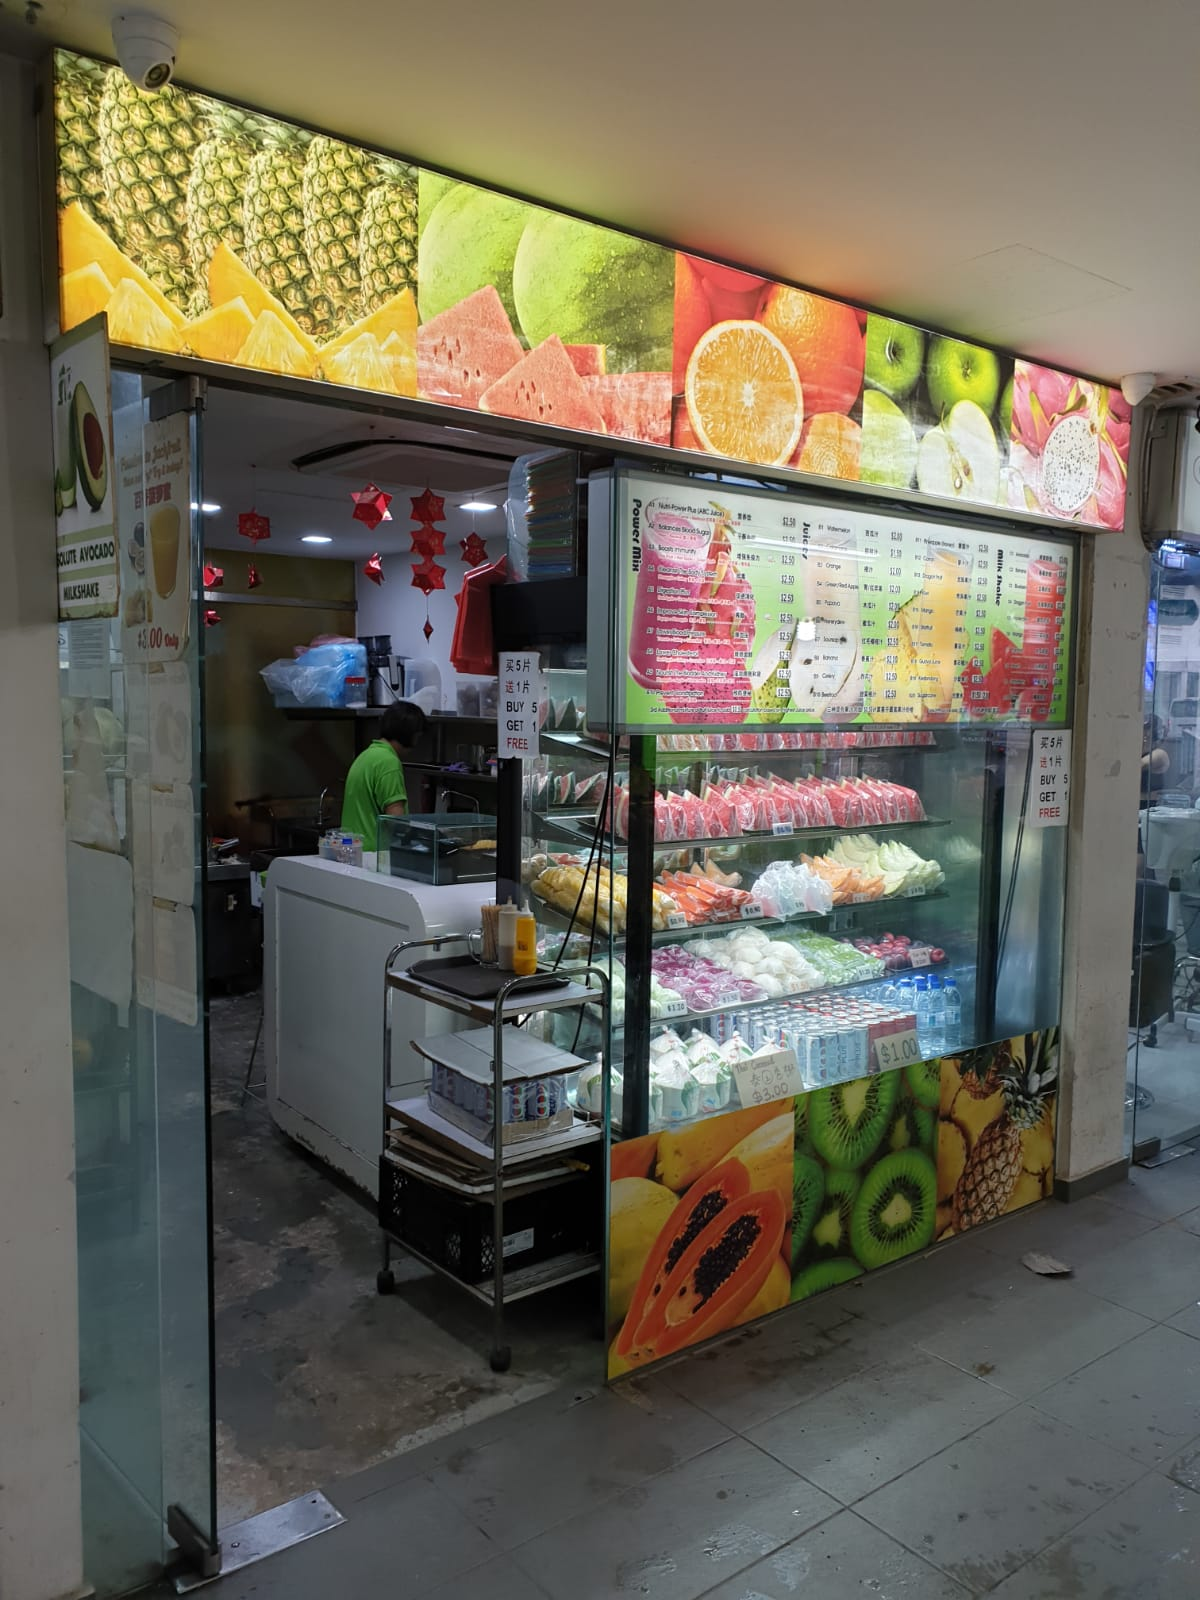 Fruits and juices shop for takeover | For Sale | Look For Buyer - Business for Sale, Buy a Ready Business